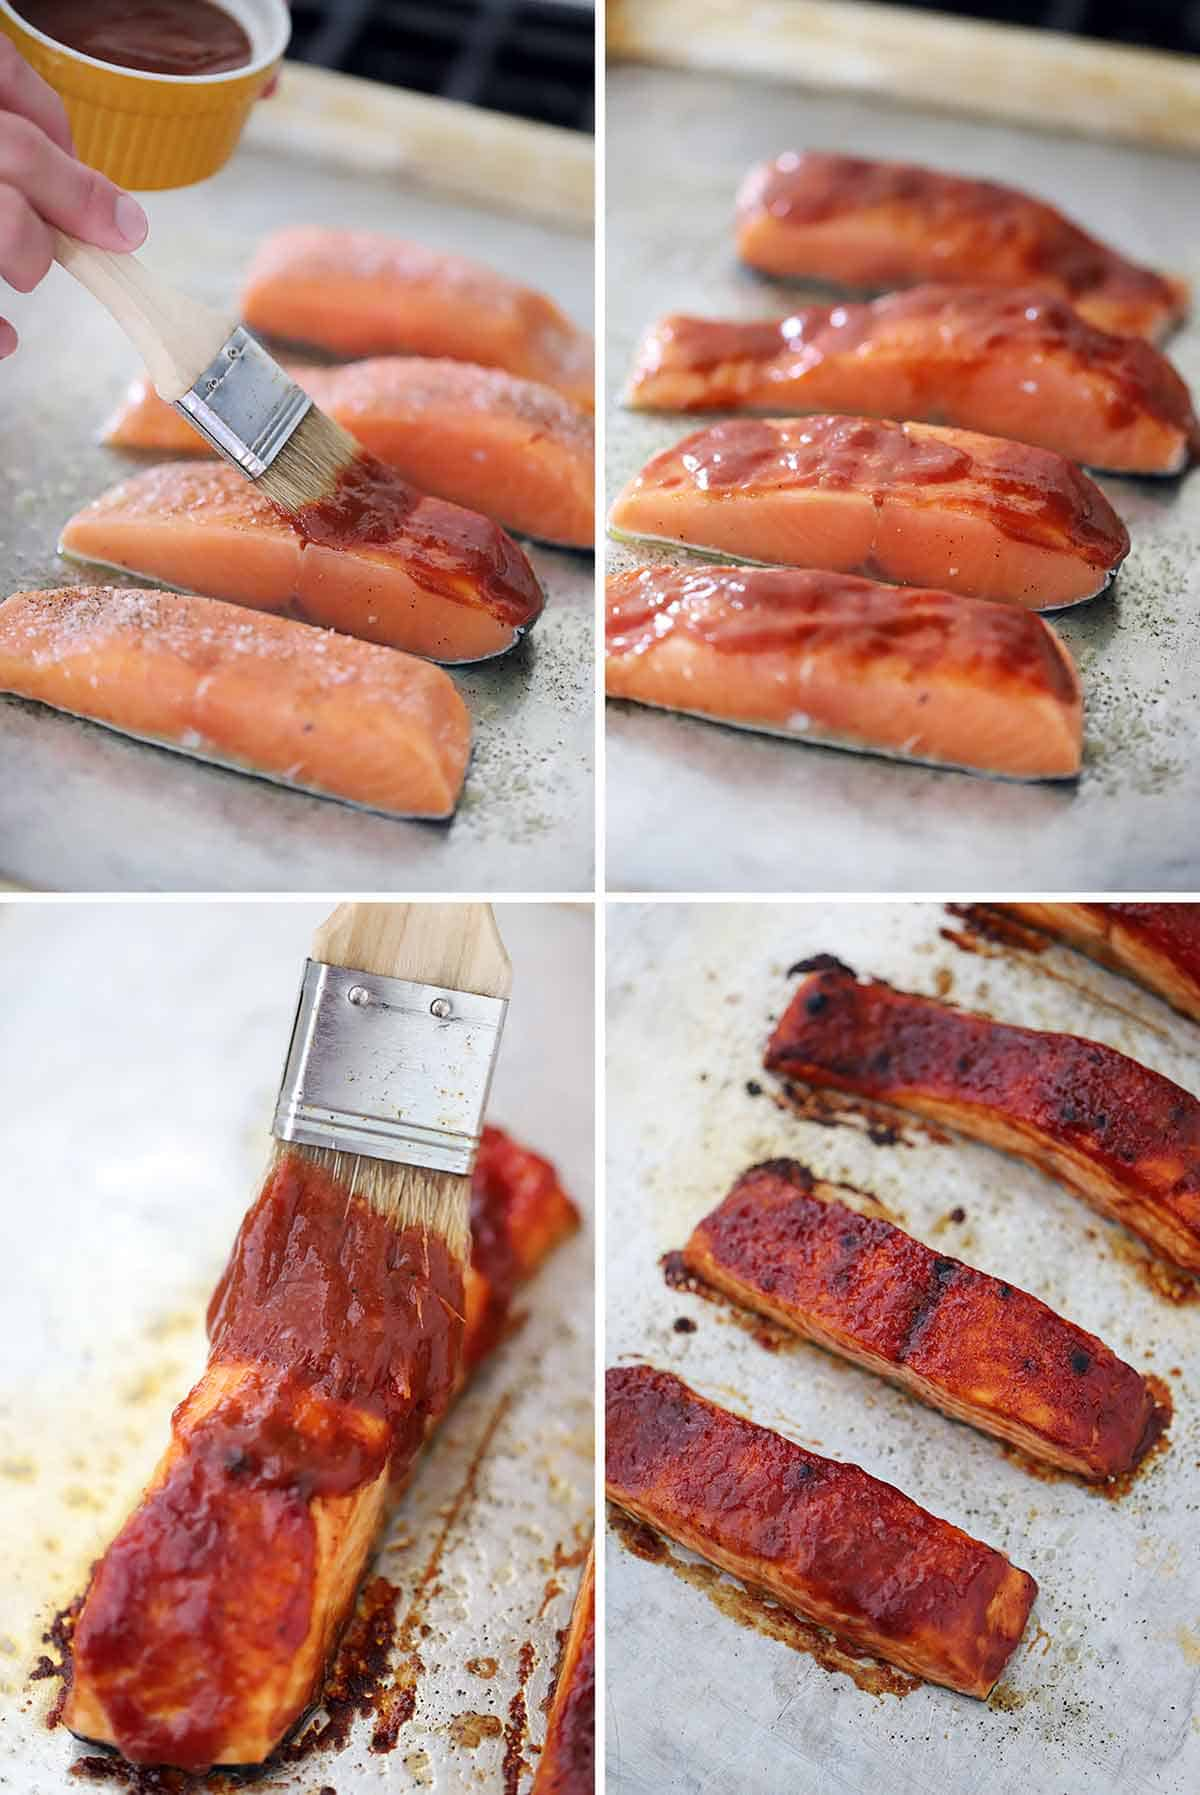 Process collage showing basting salmon filets with BBQ sauce and baking in the oven.